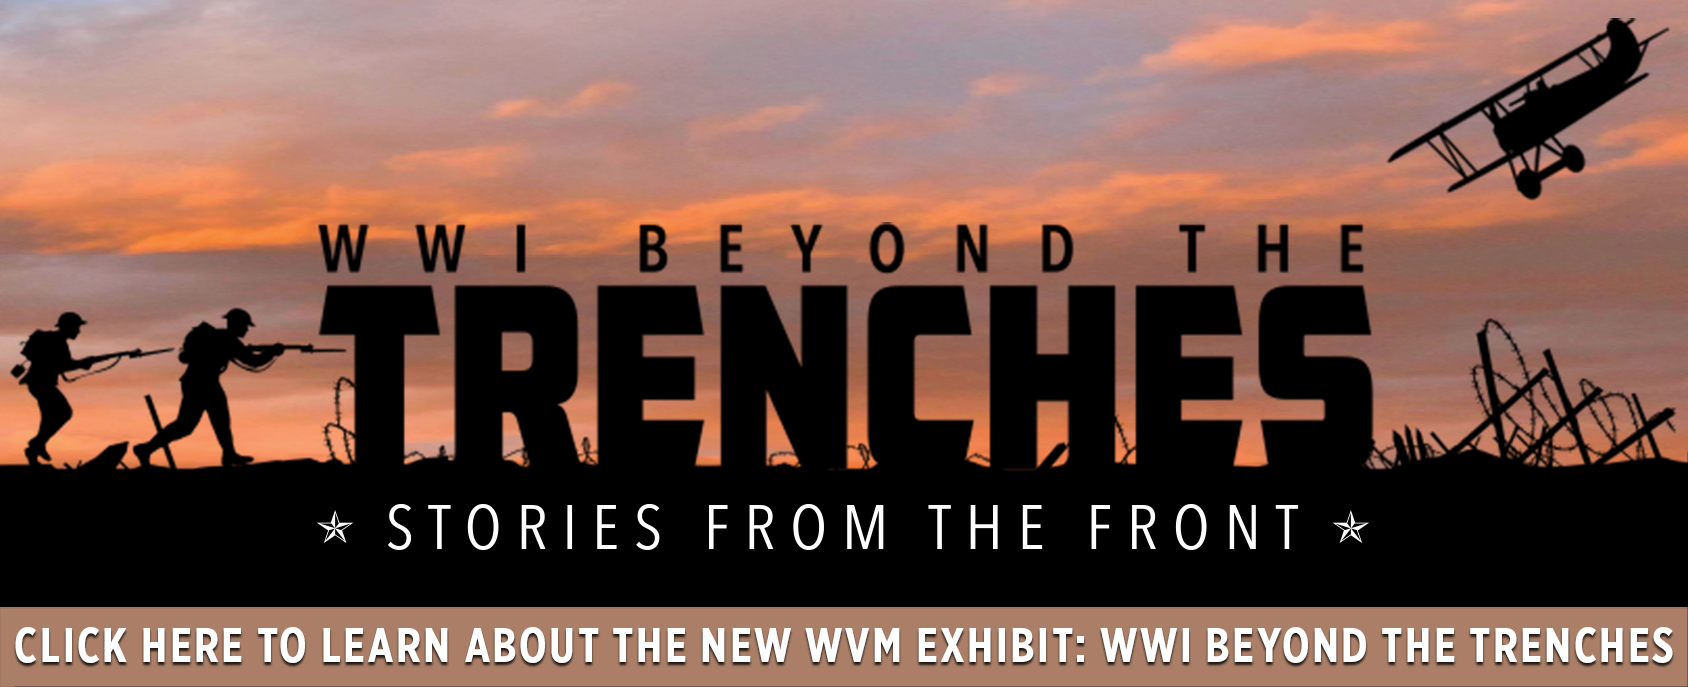 Beyond the Trenches: Stories from the Front